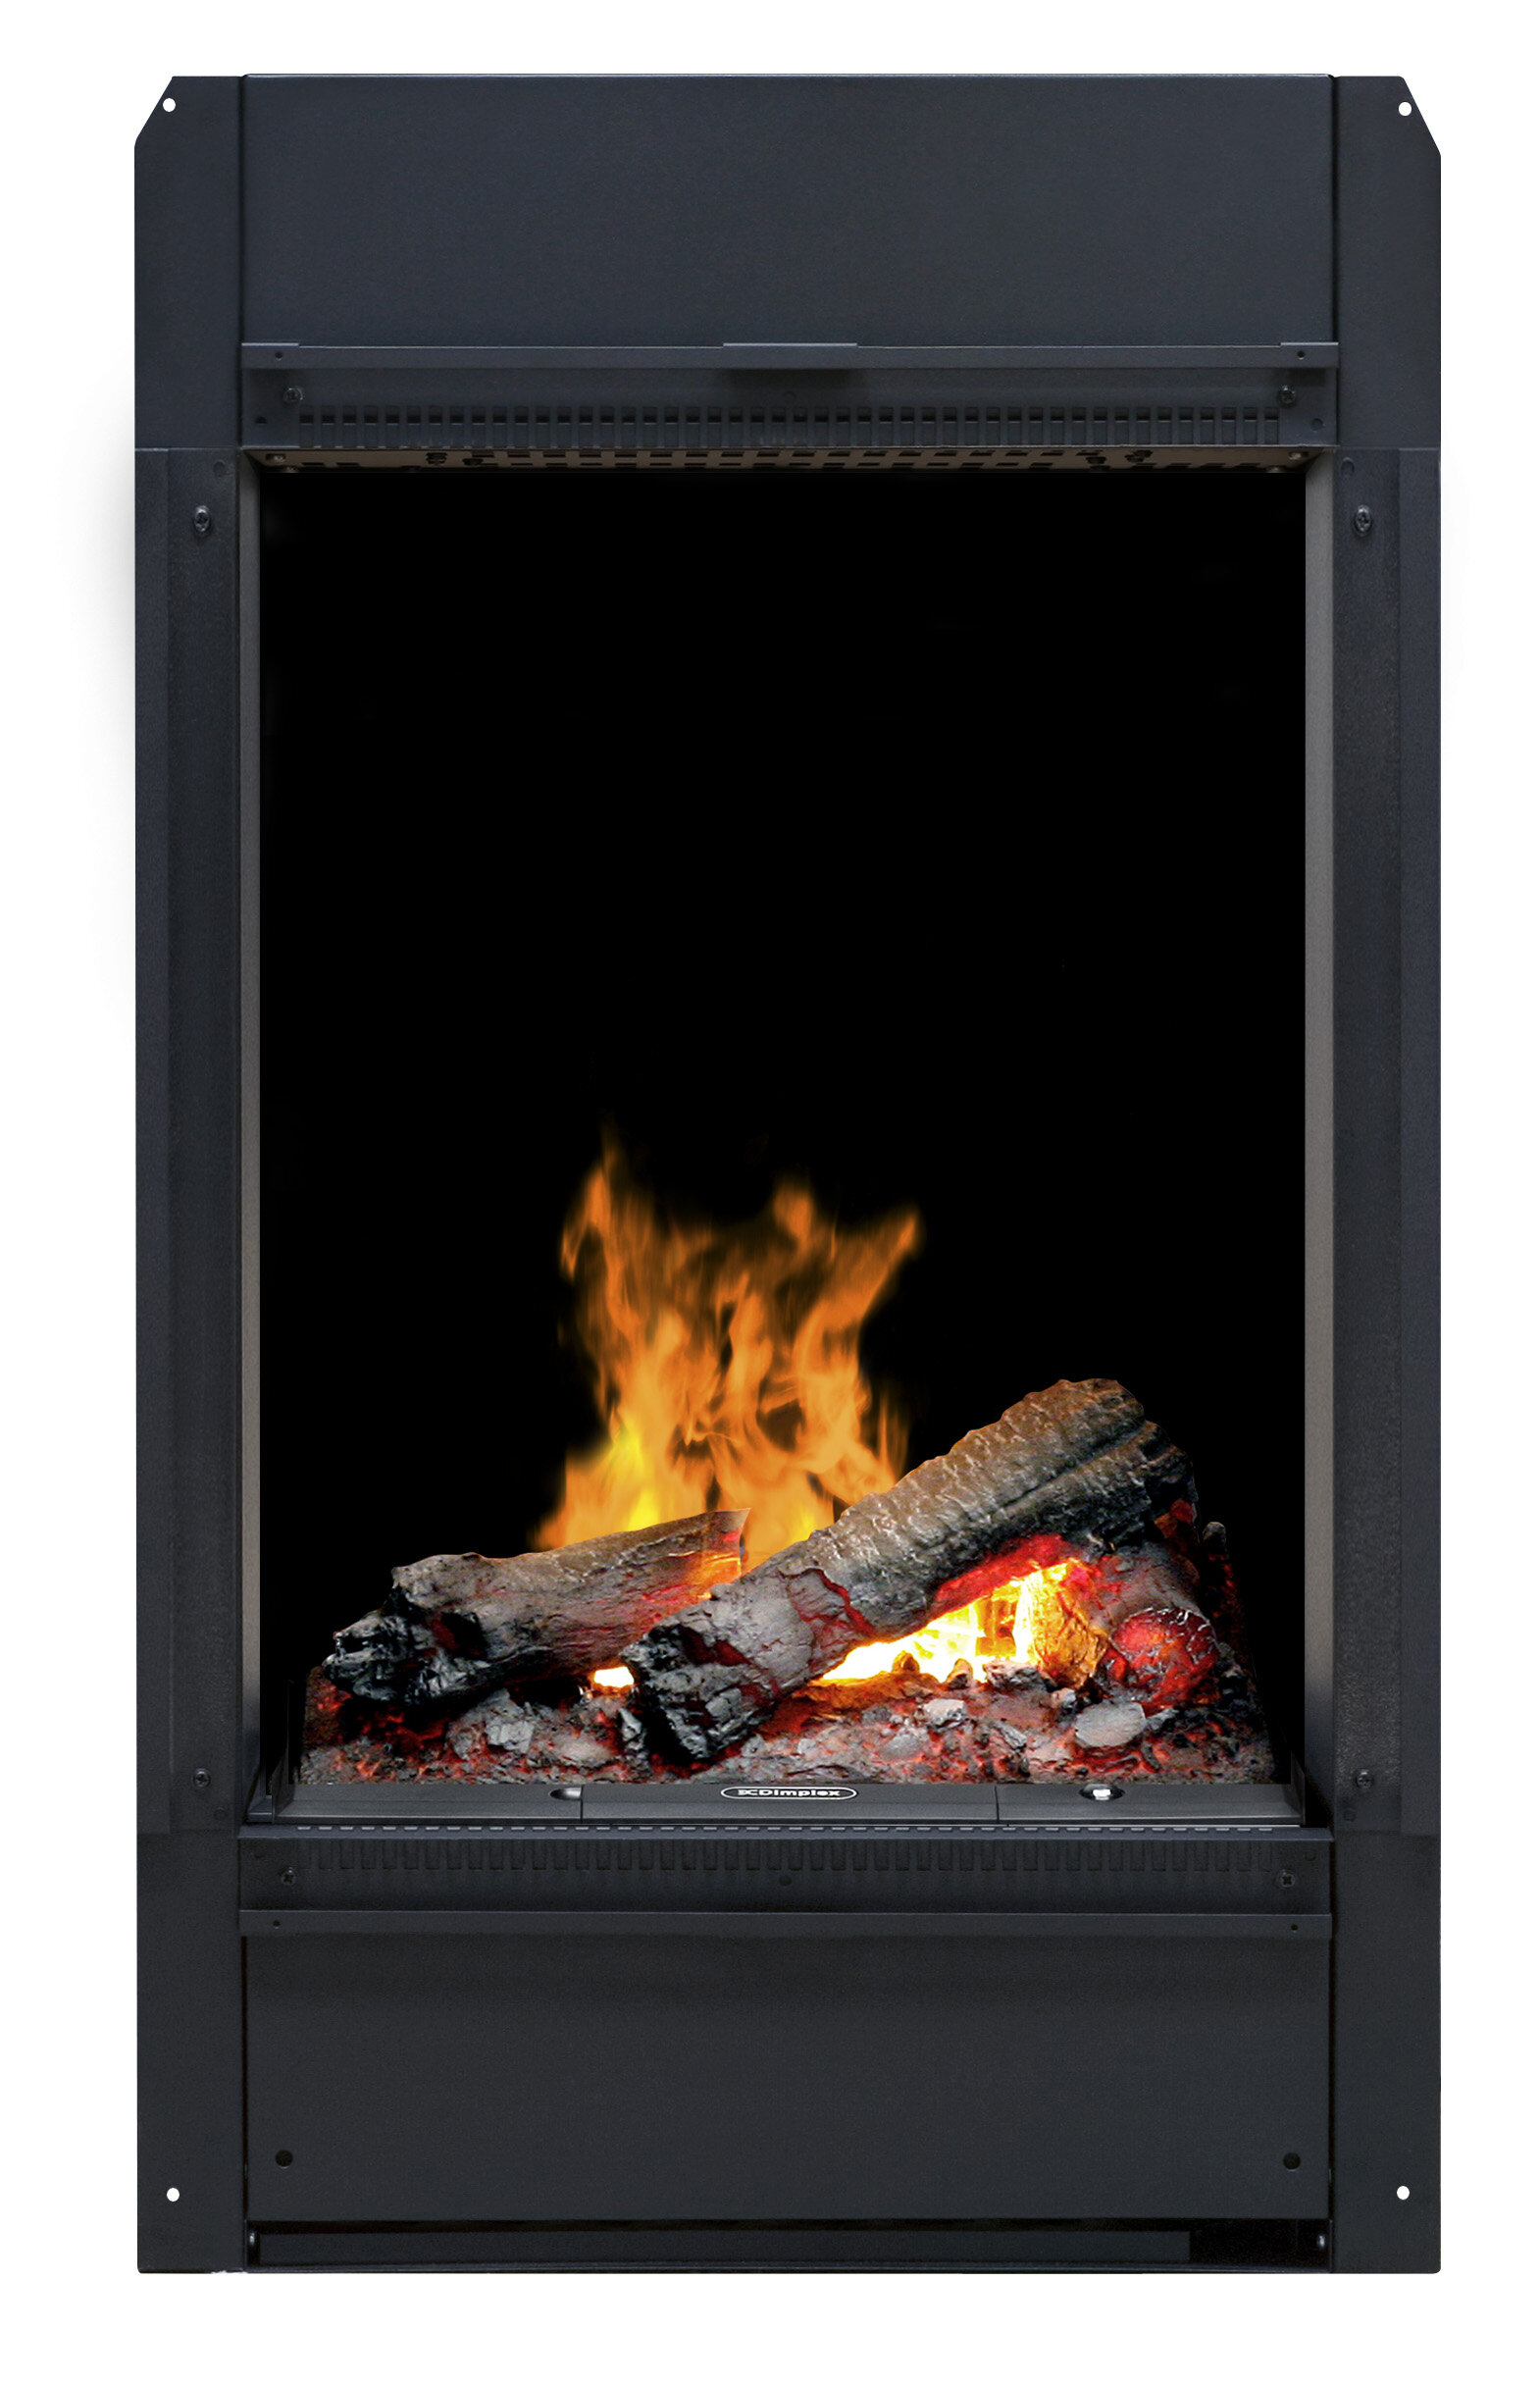 indulgence showroom heating myst fires zoom by fireplaces electric with woodburners opti darlington suites stoves marble dimplex bali fireplace fire